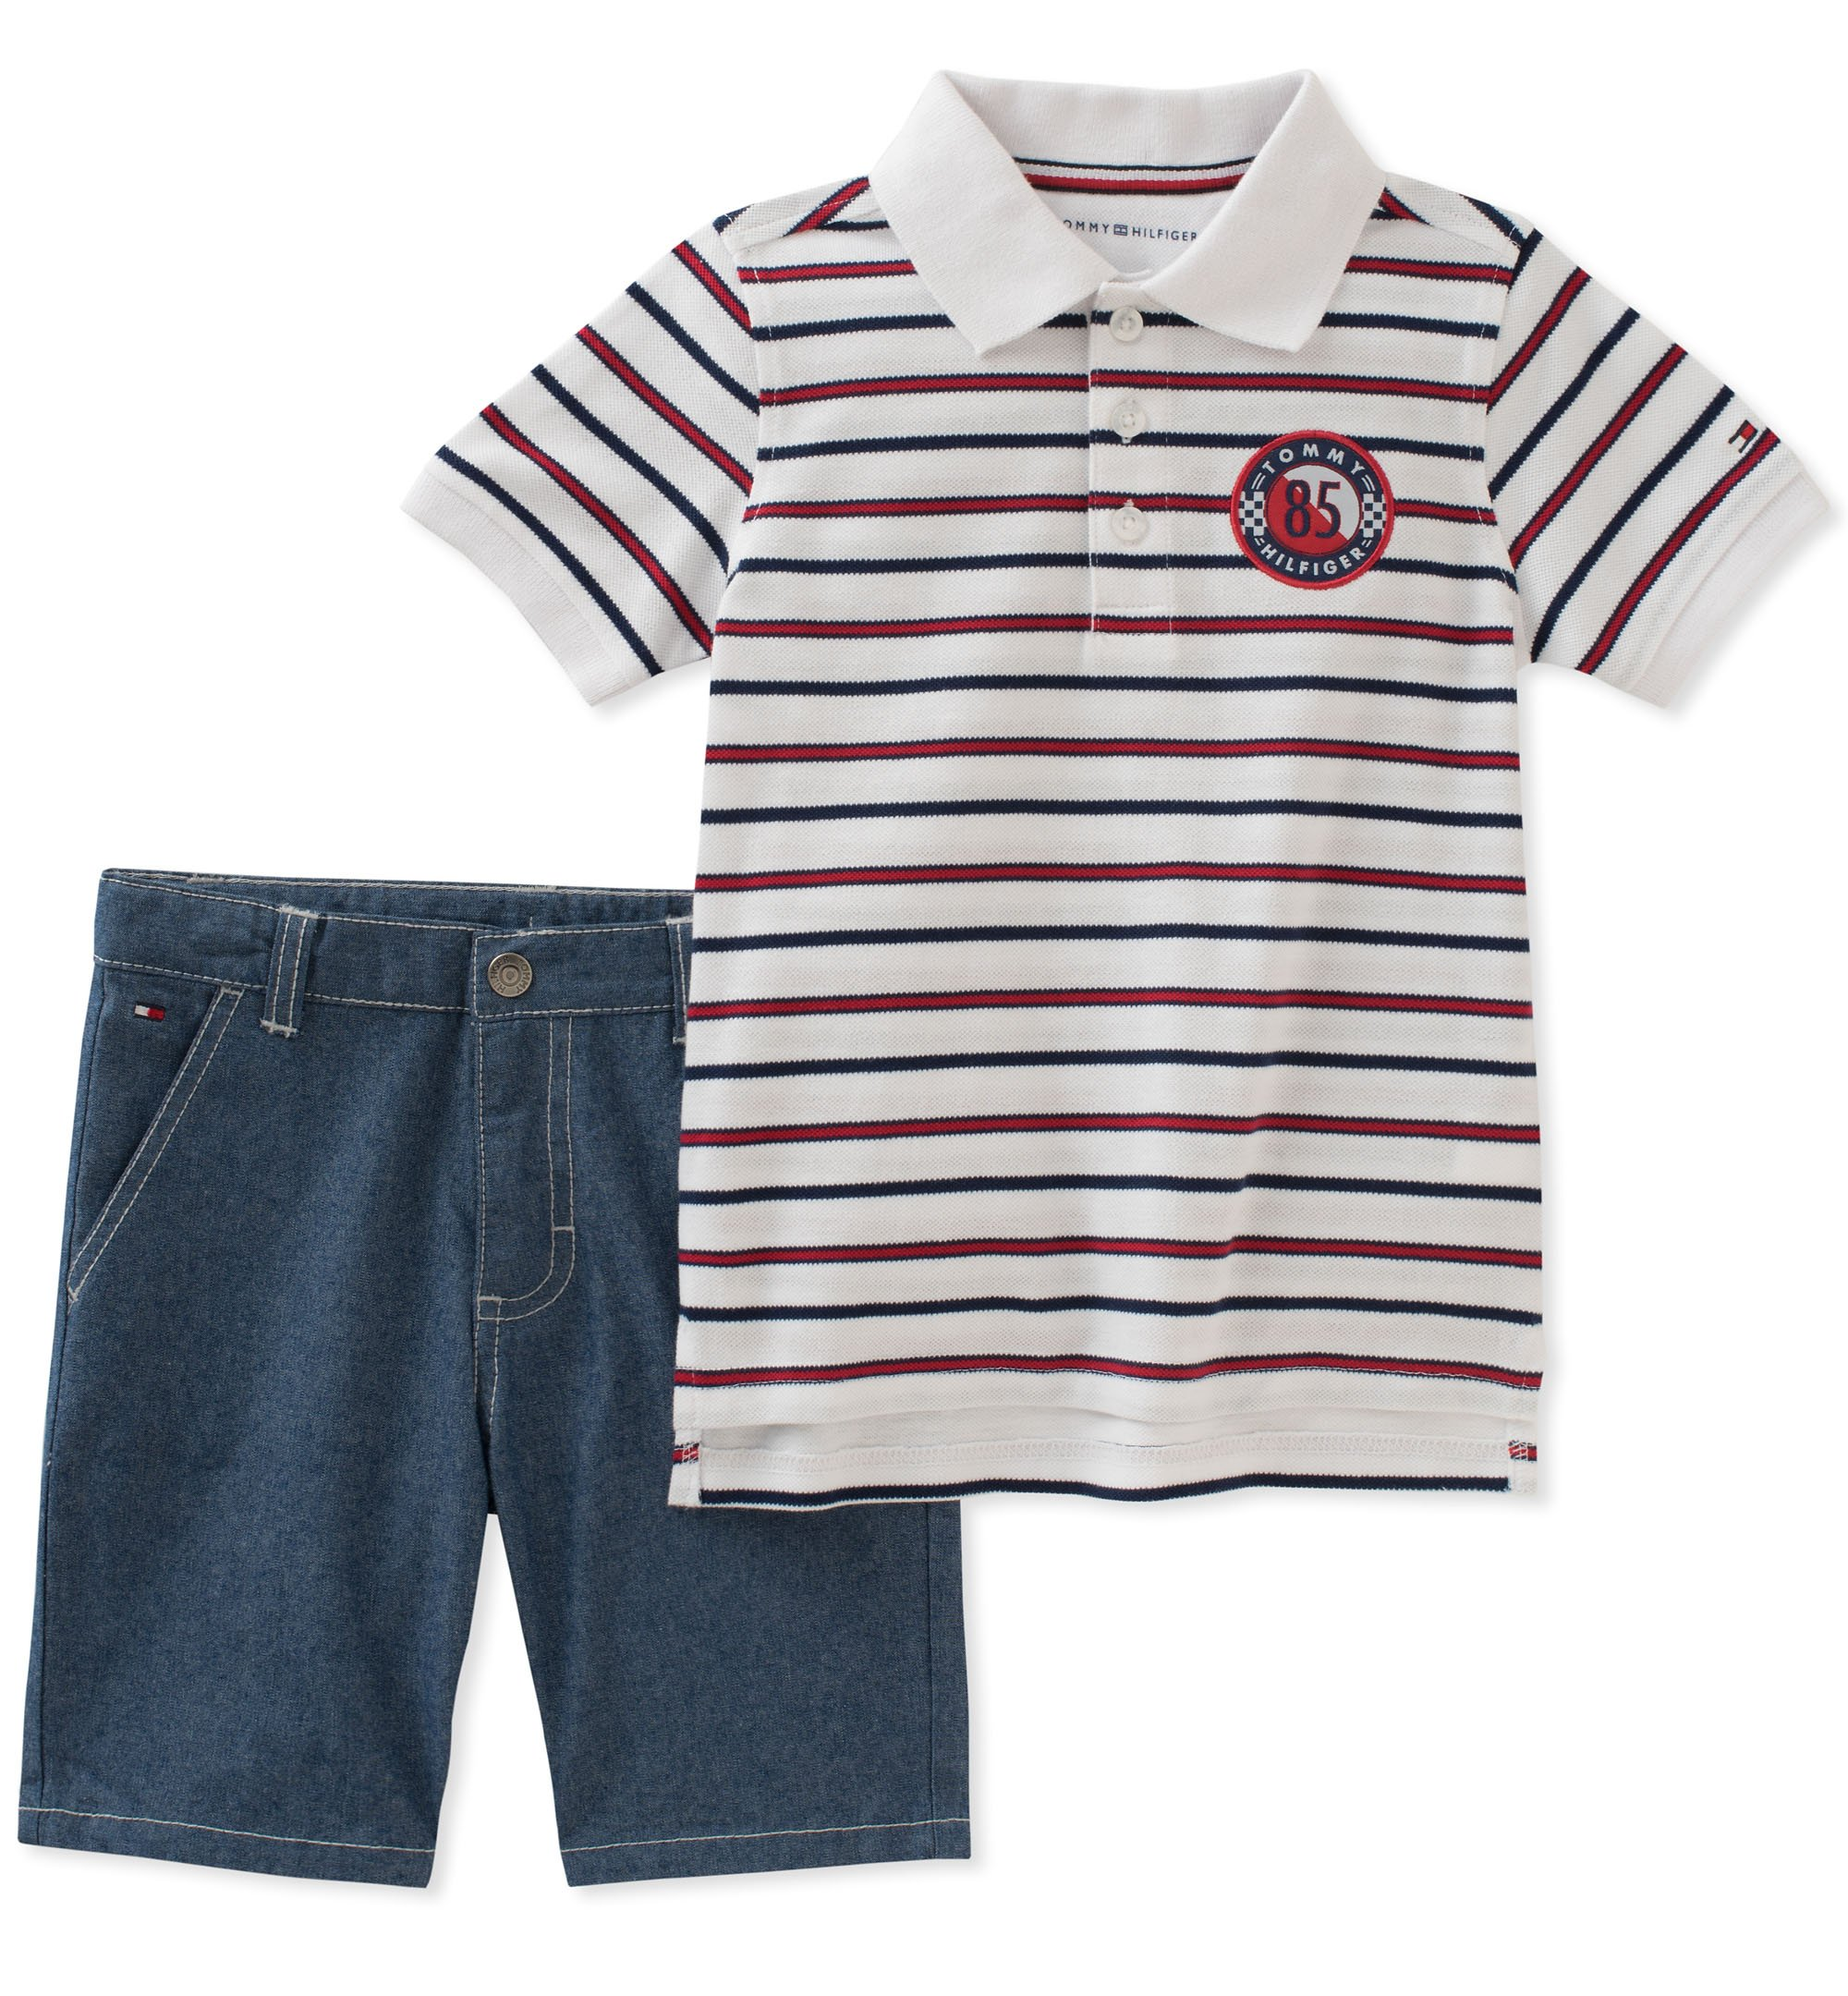 Tommy Hilfiger Boys' Toddler 2 Pieces Polo Shorts Set, red/Blue/White, 2T